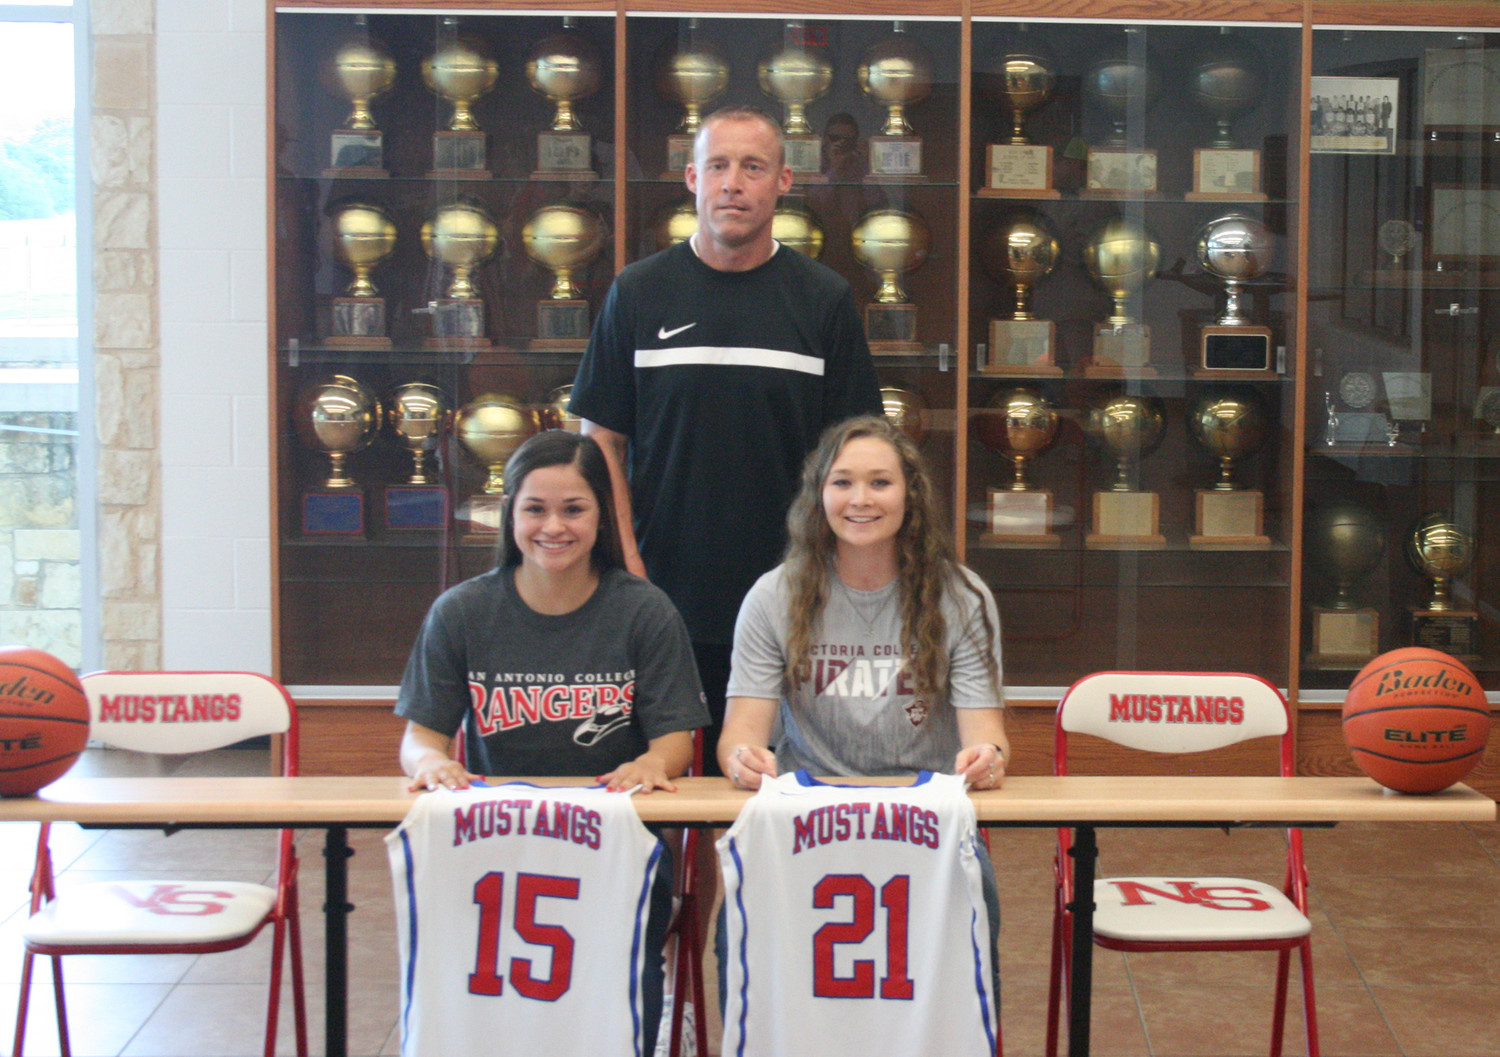 NIXON-SMILEY: